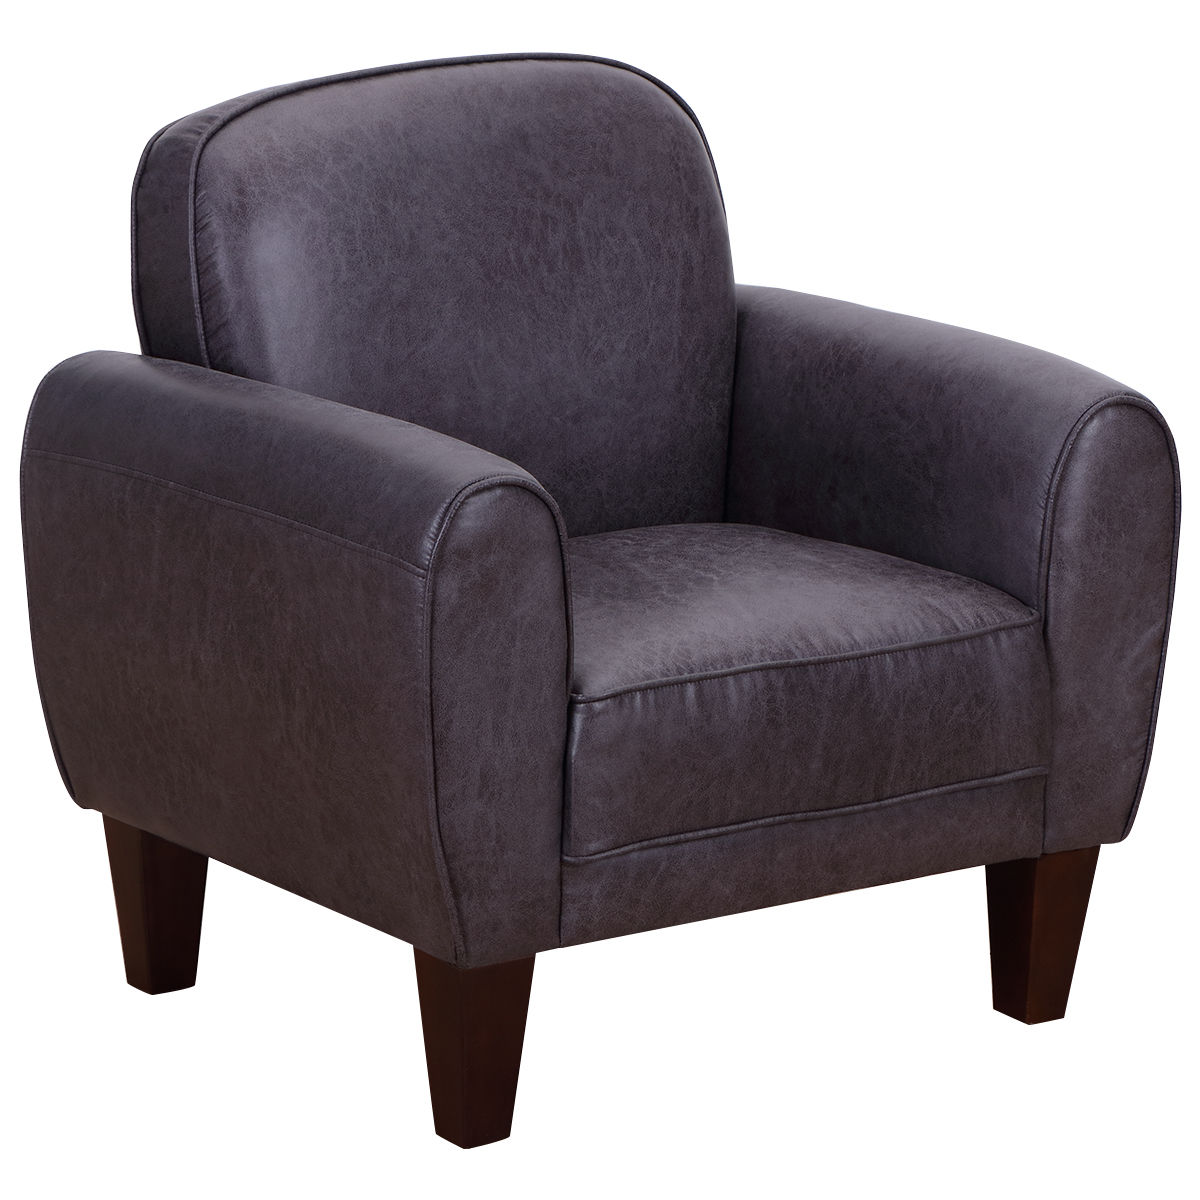 Costway Single Sofa Leisure Arm Chair Accent Upholstered Living Room Office Furniture